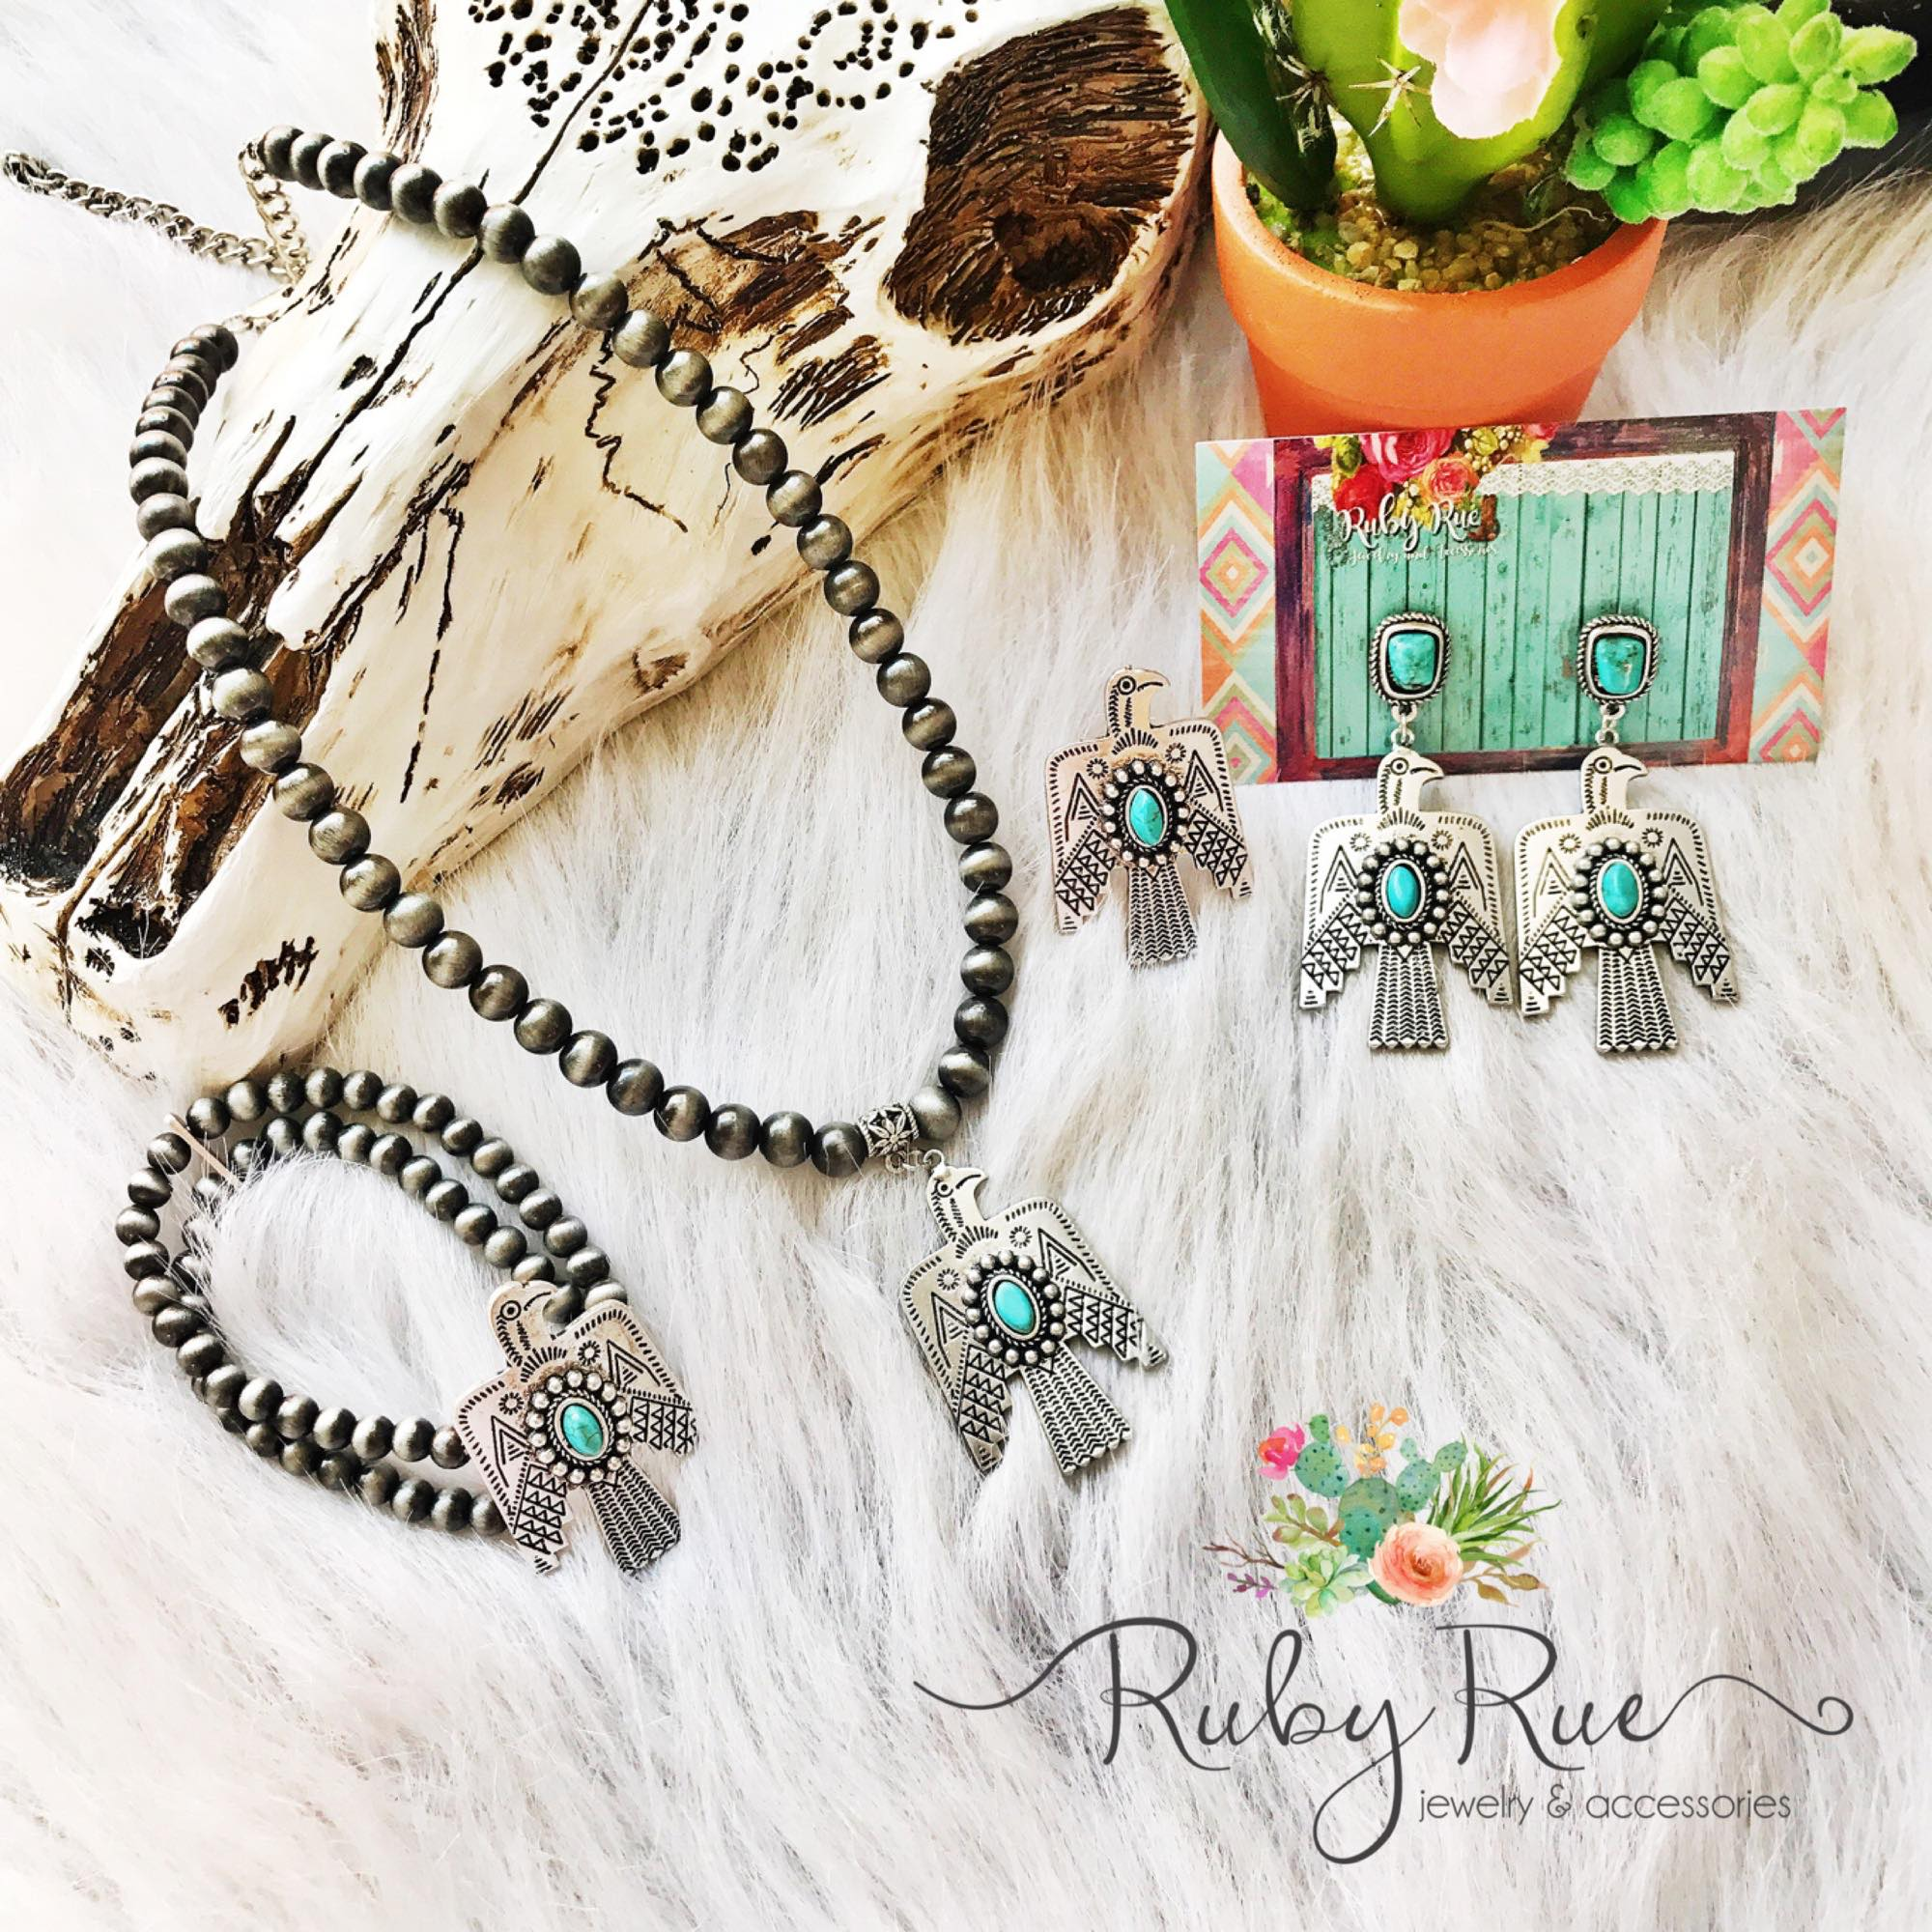 Silver Thunderbird Necklace - Ruby Rue Jewelry & Accessories